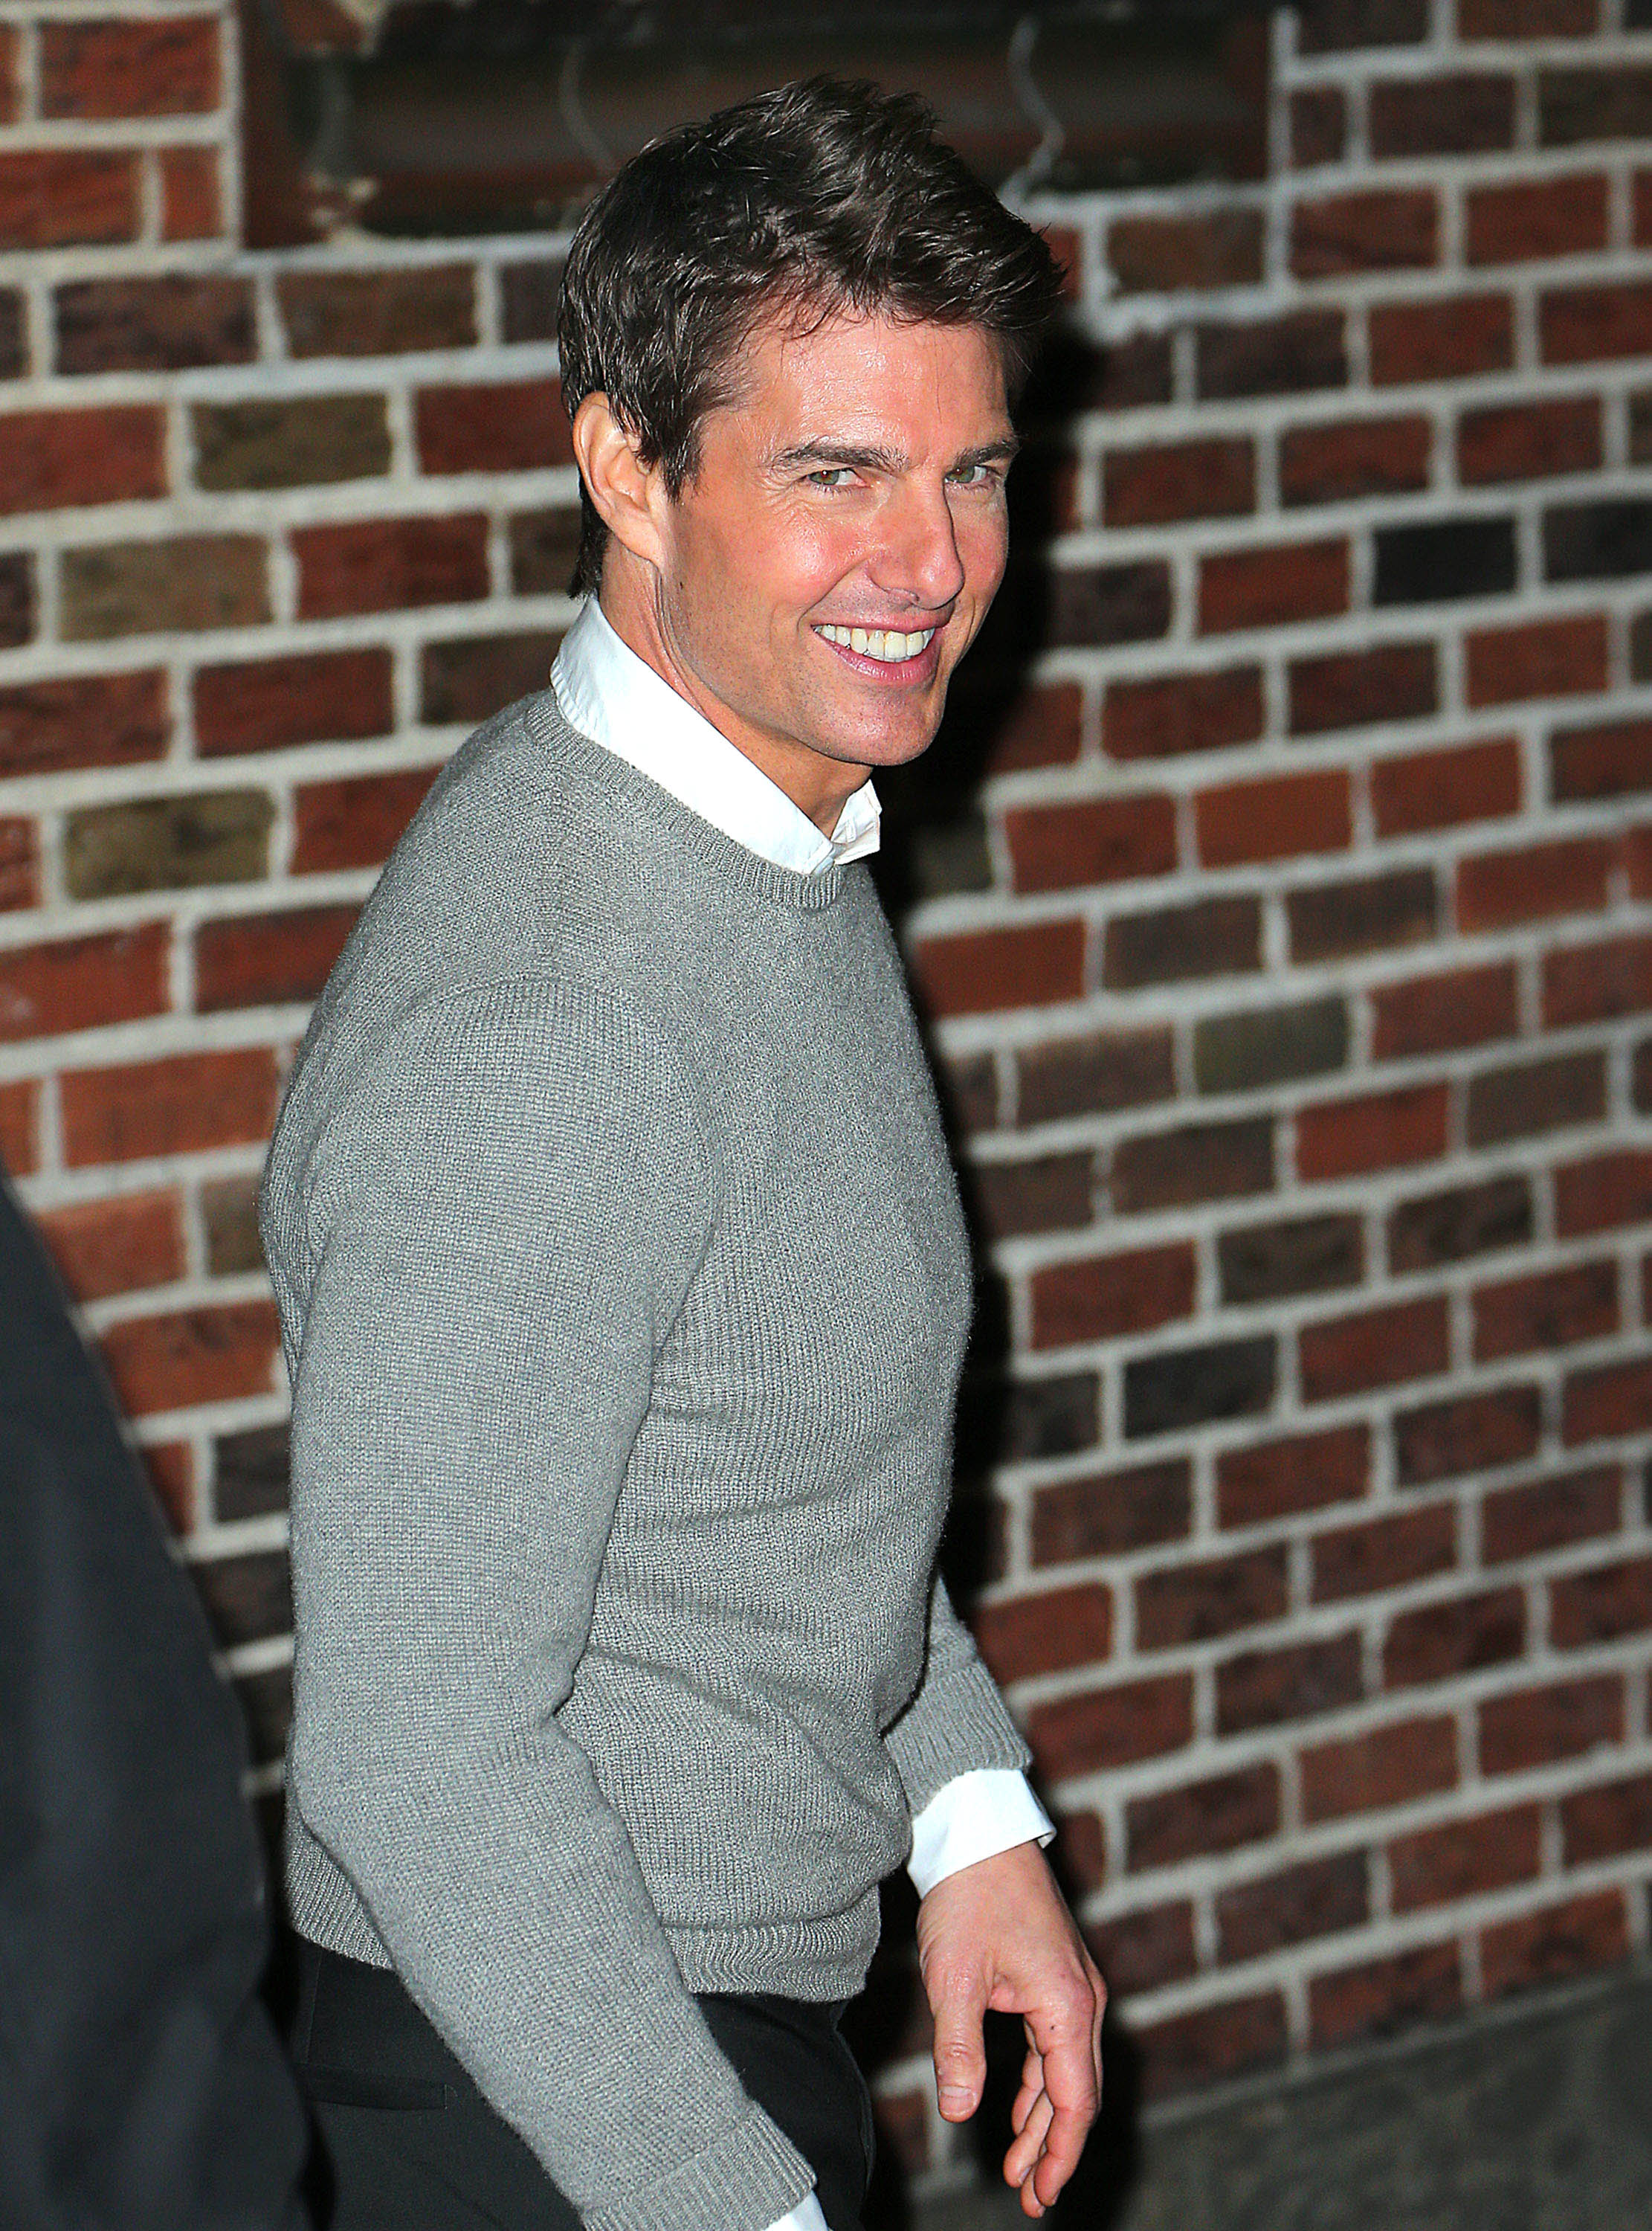 Tom Cruise was promoting his new movie.